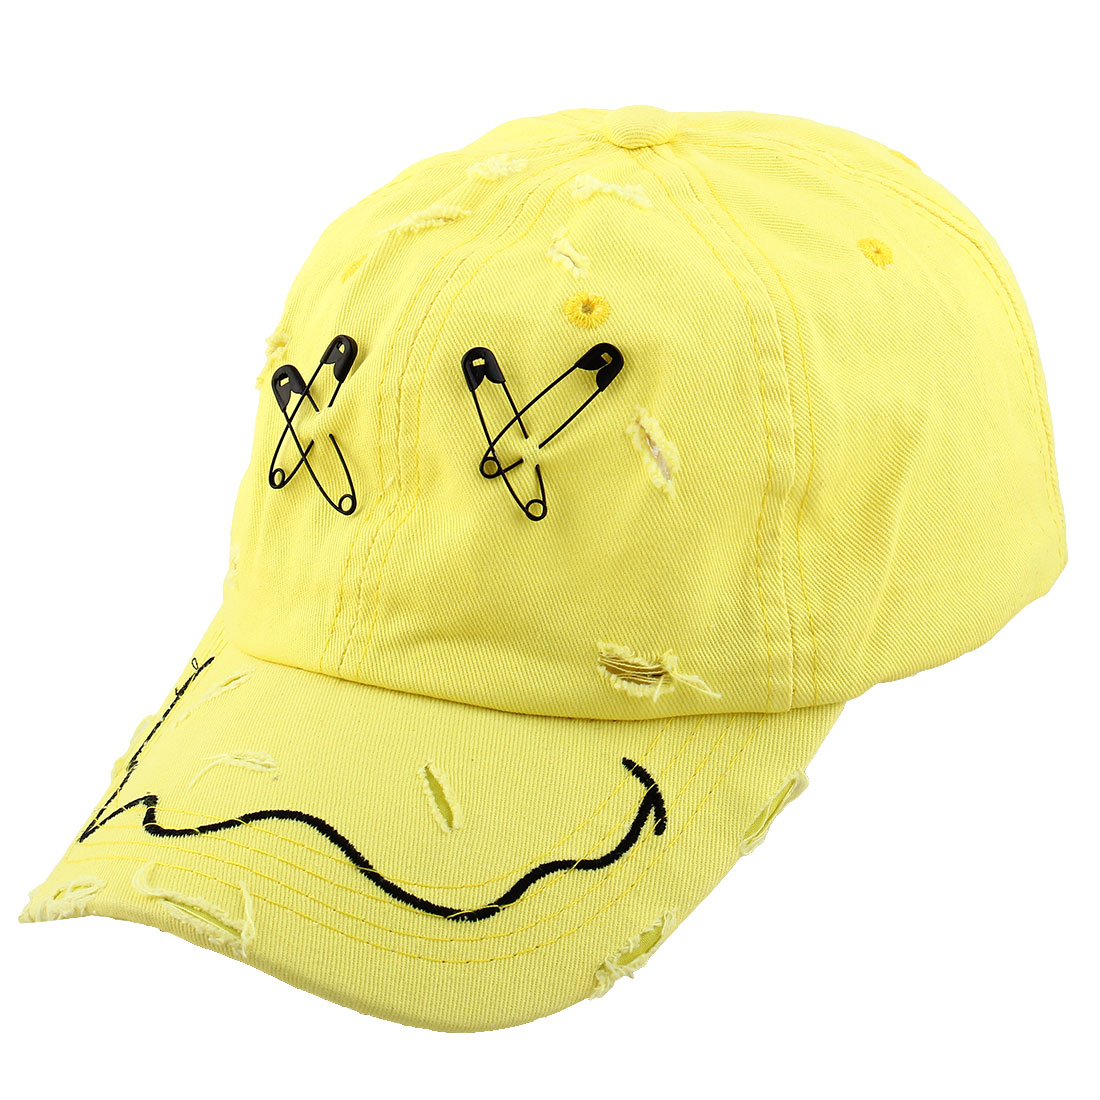 Unisex Metal X Letter Decor Outdoor Sports Golf Baseball Peaked Hat Cap Yellow